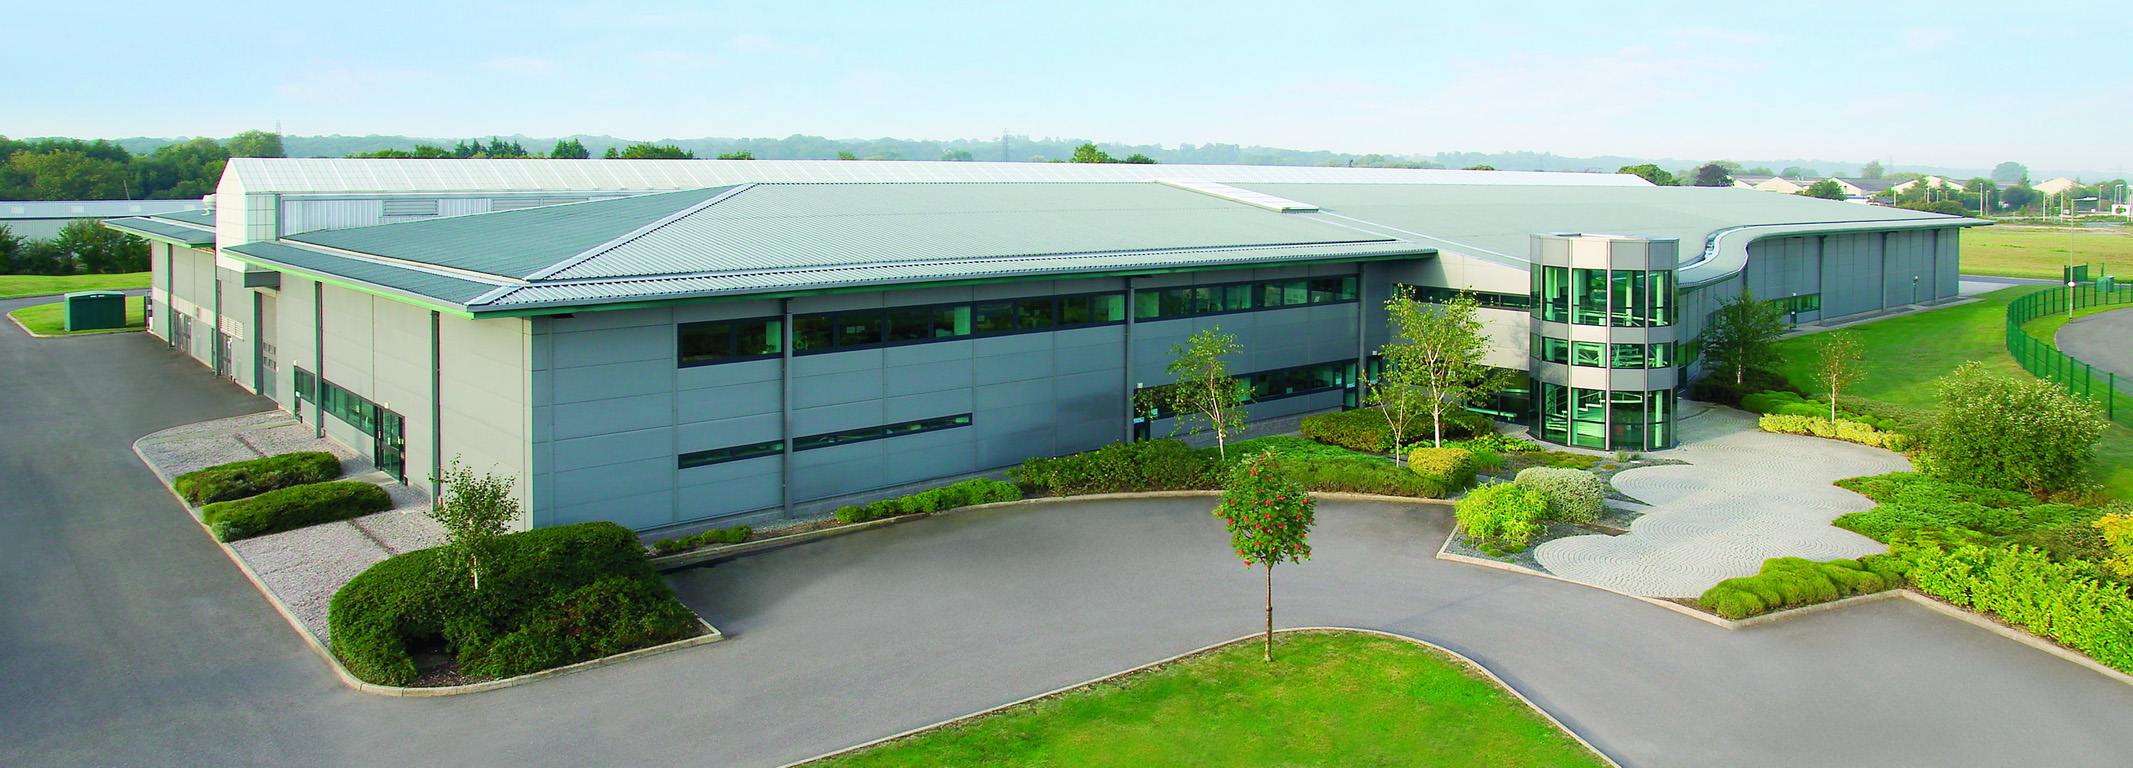 Xtrac_Limiteds_UK_headquarters_in_Berkshire.jpg